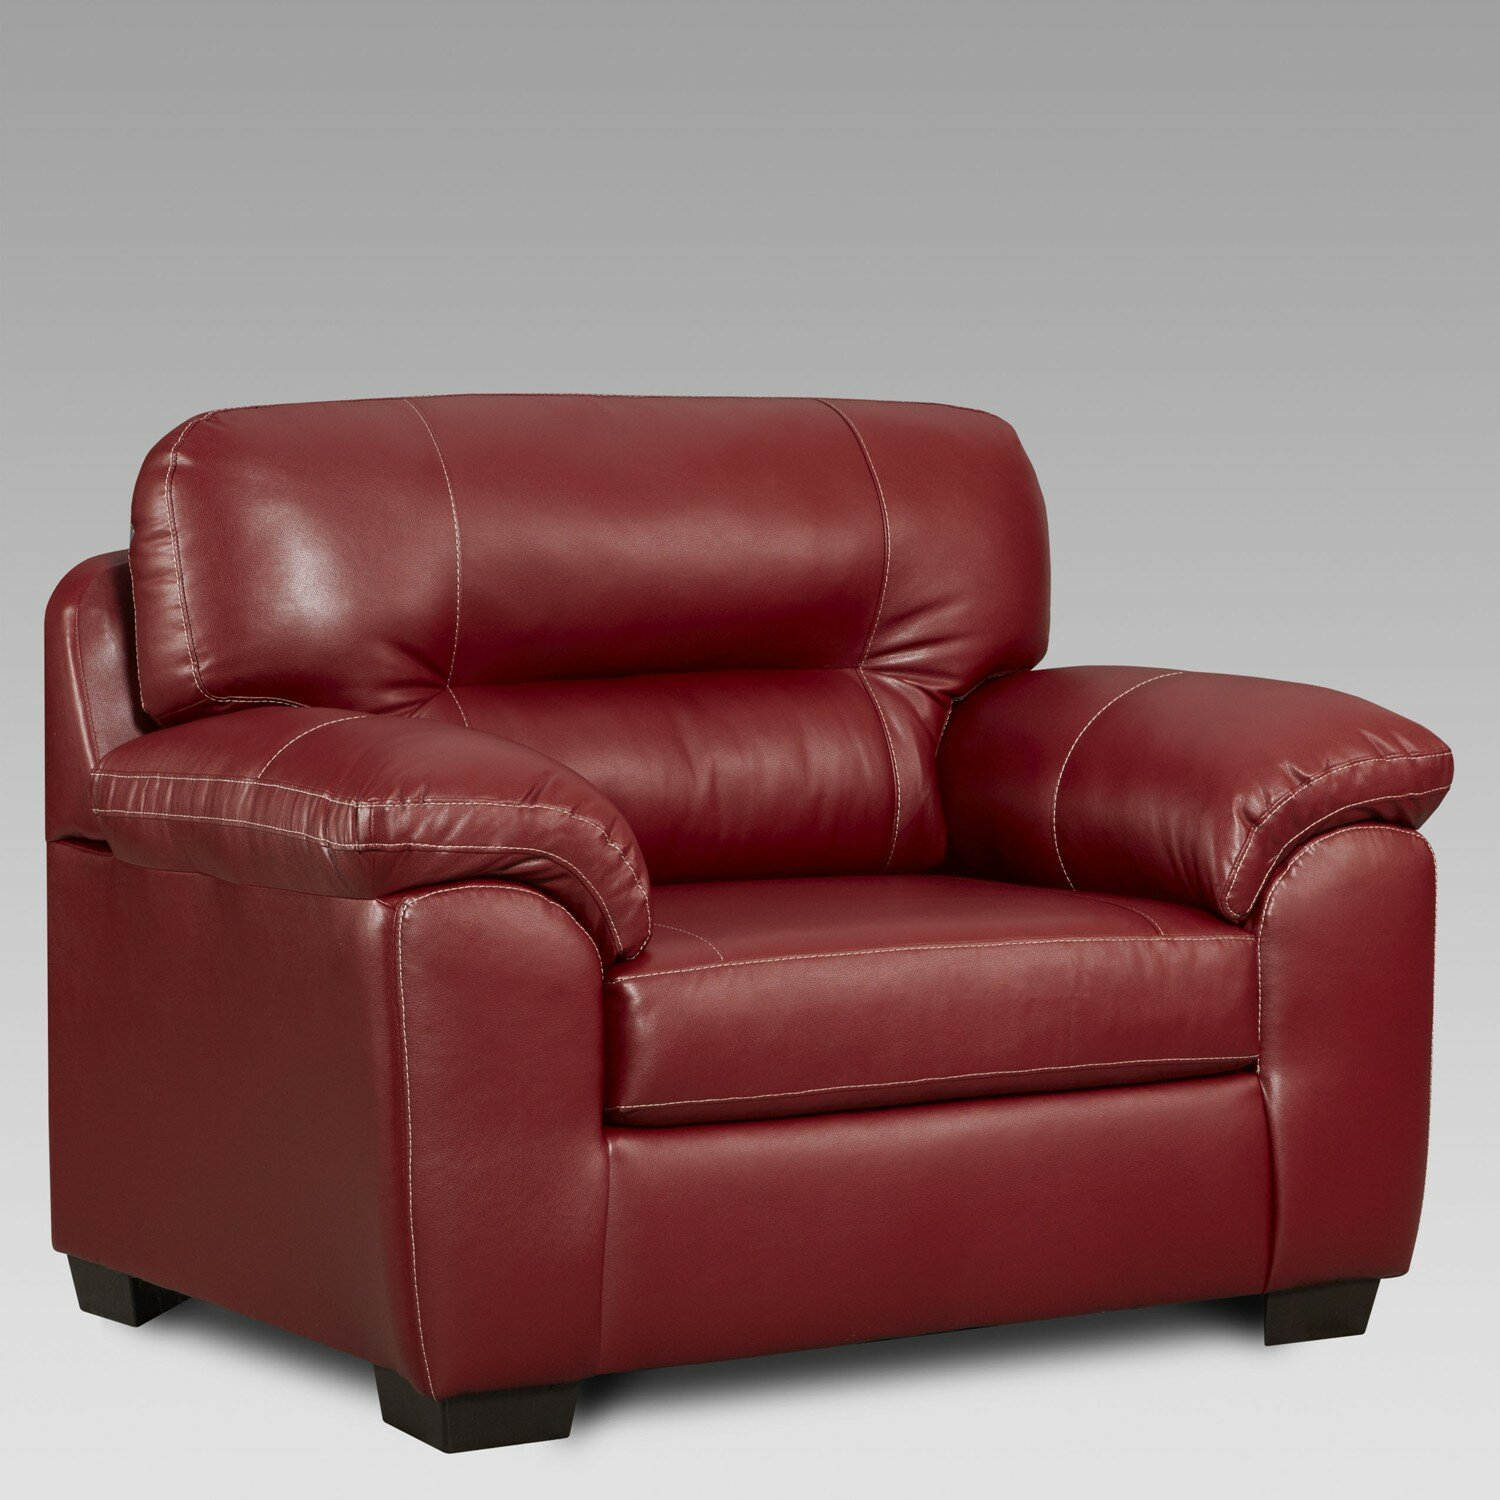 Gentil Red Barrel Studio Rainsburg Oversized Armchair | Wayfair